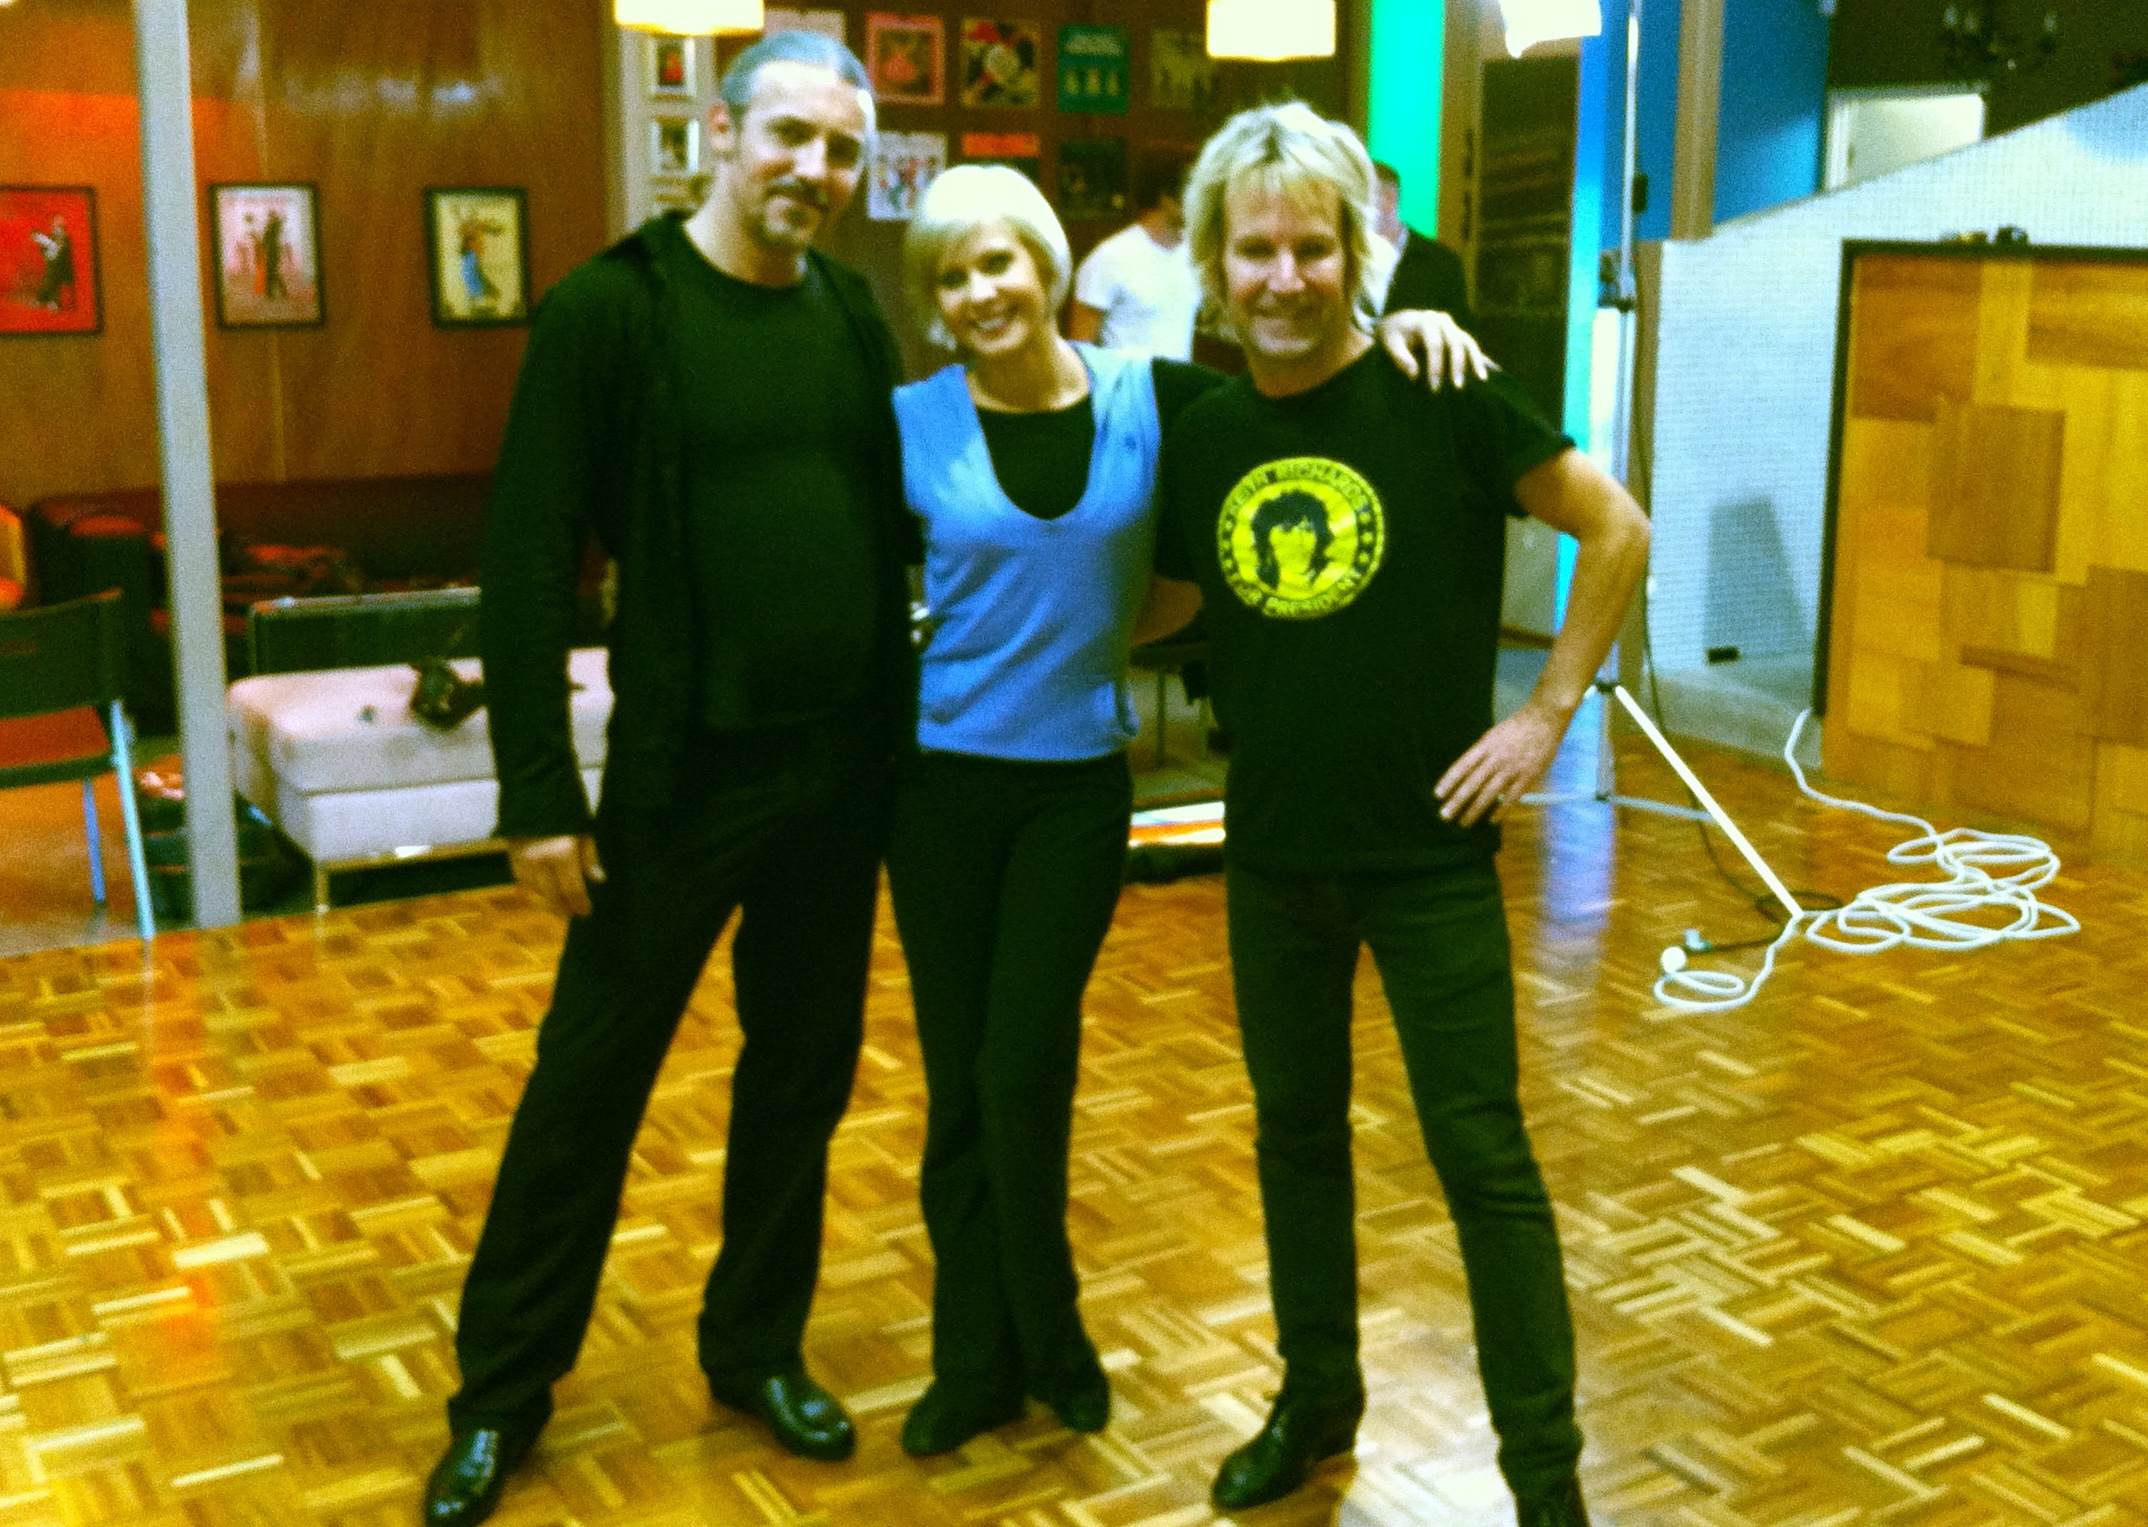 Paso doble lesson for Brian Manix on Dancing with the stars